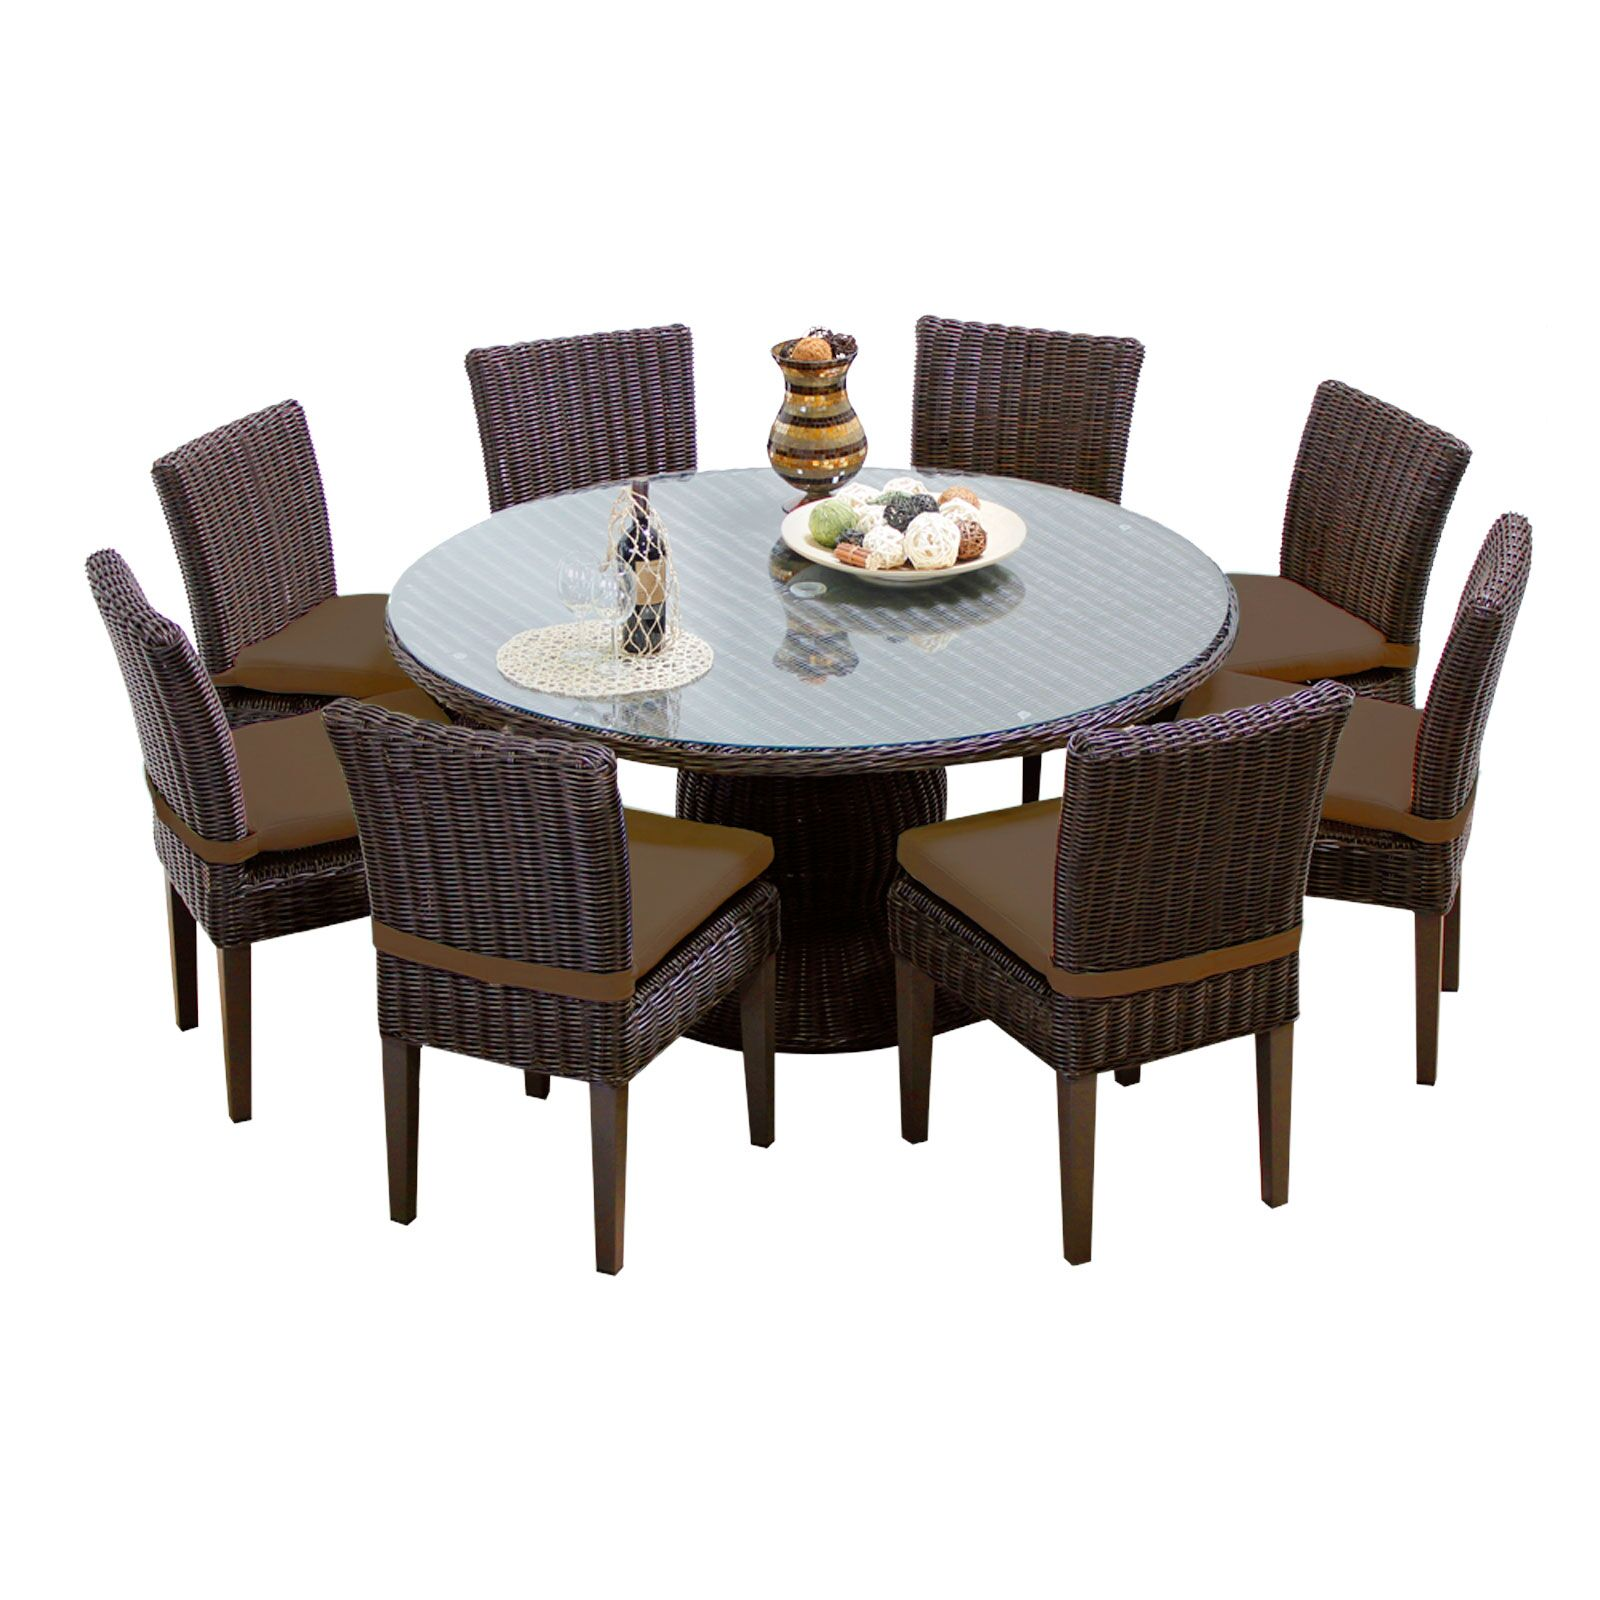 Eldredge 9 Piece Dining Set with Cushions Color: Cocoa